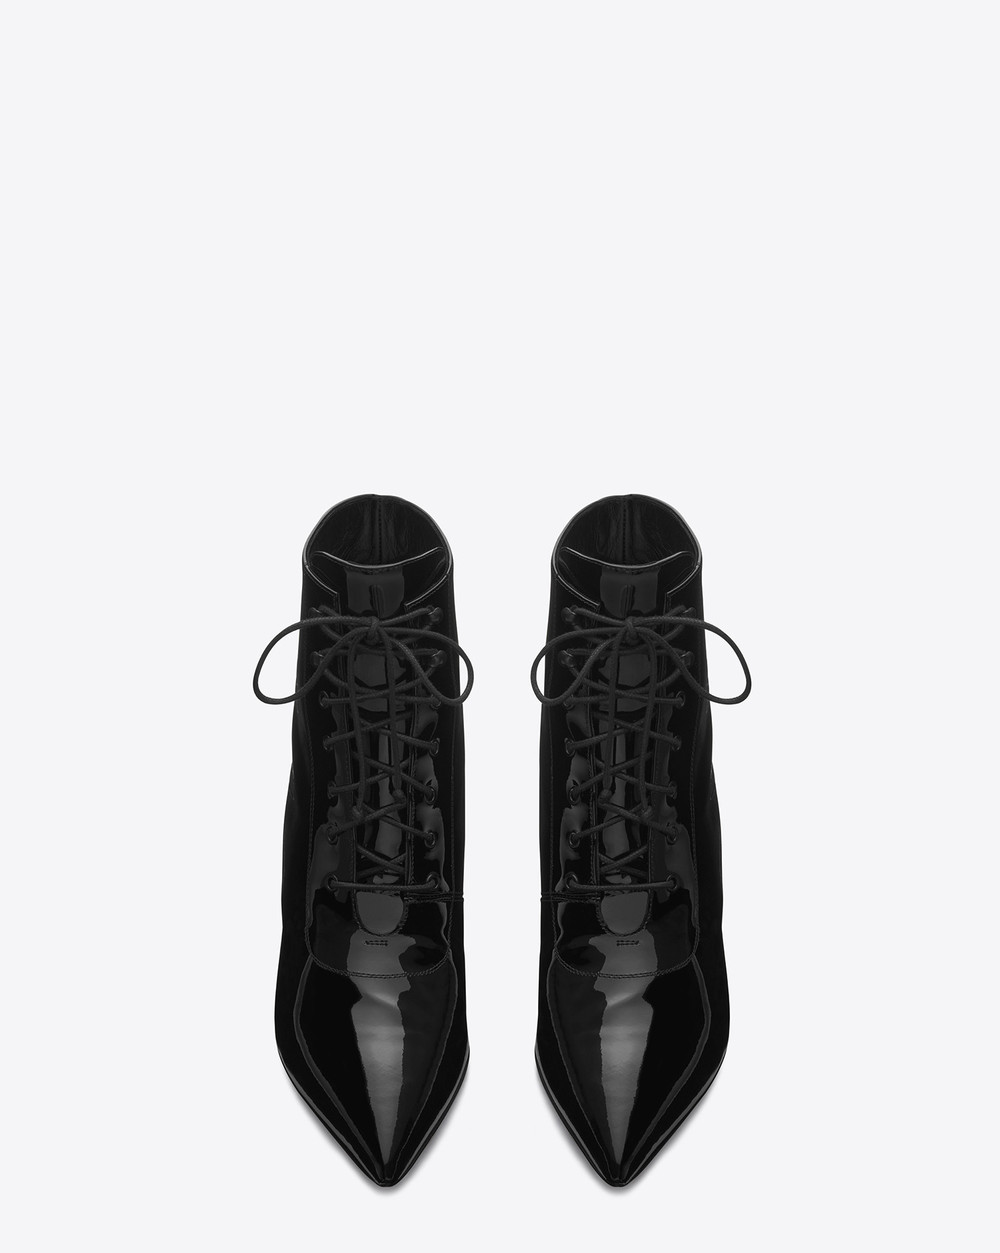 Saint_Laurent_Cat_Boots 02.jpg